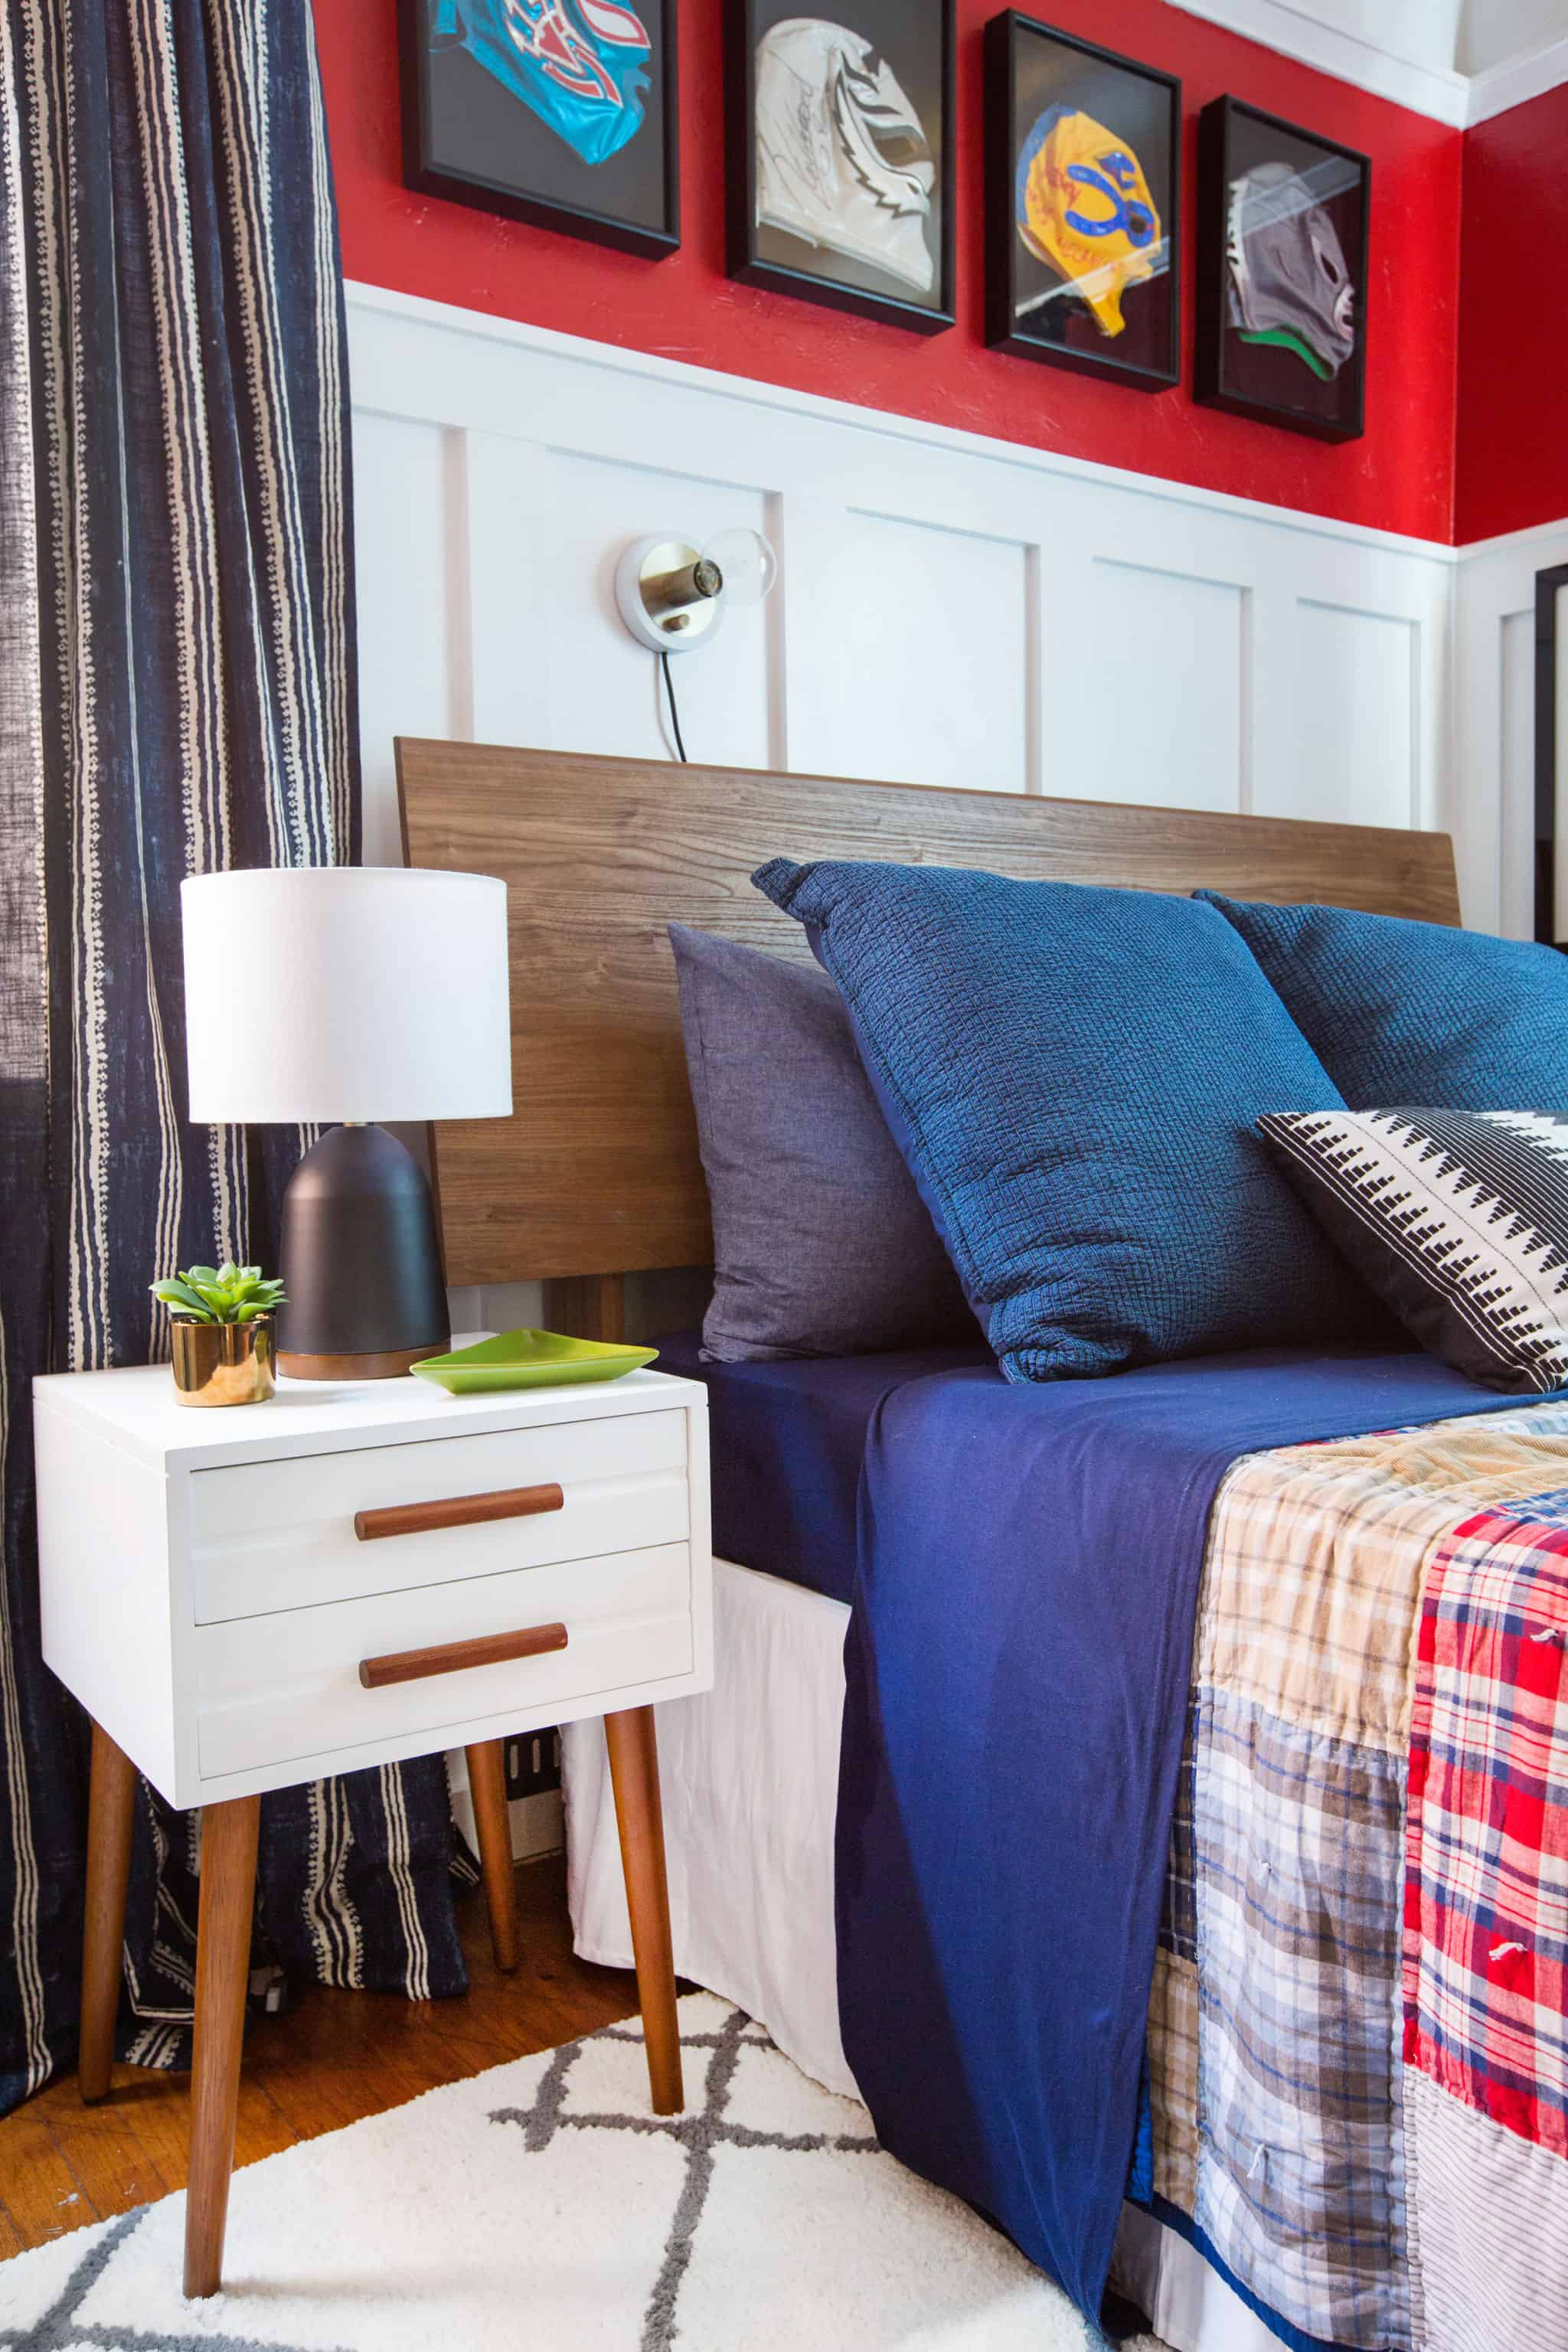 emily-henderson_power-couples_beds-and-nightstands_roundup_combos_styled-photos6